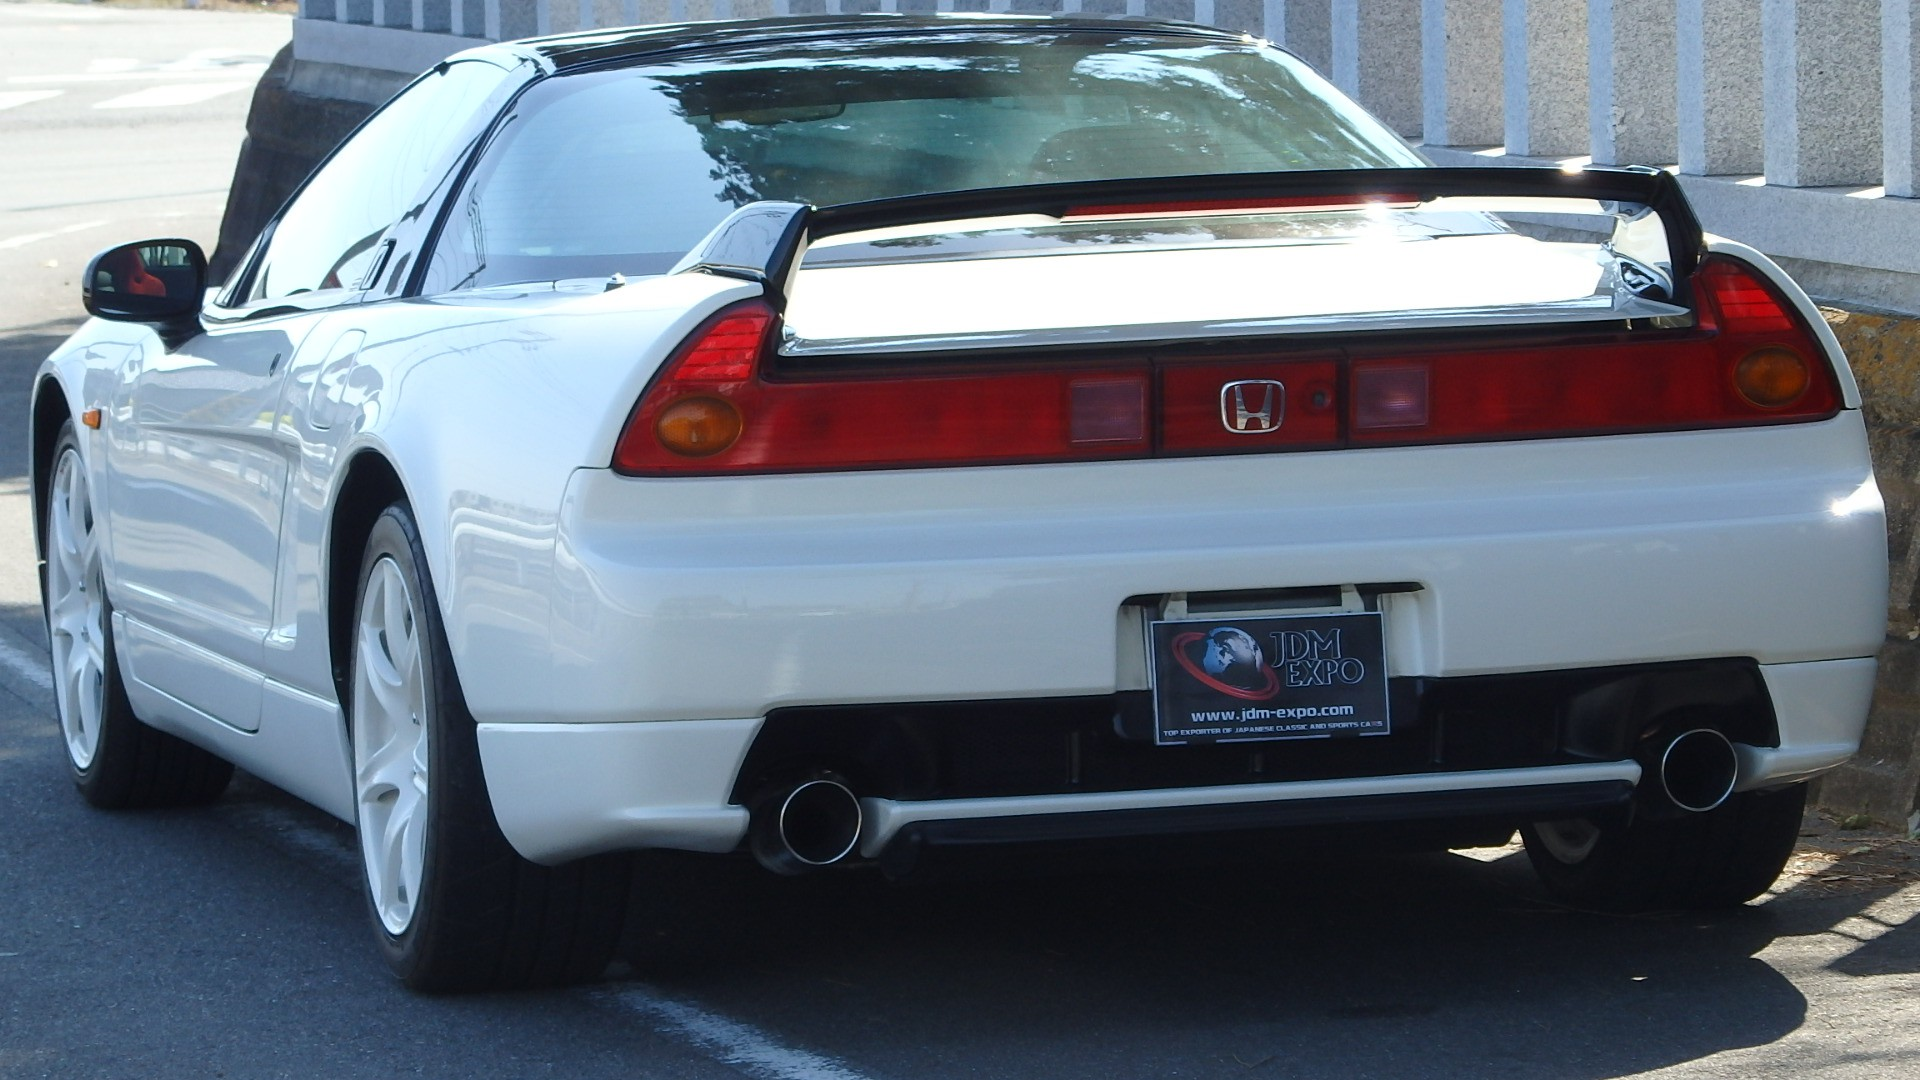 Gtr R33 For Sale Usa >> Gtr R33 For Sale Usa Upcoming Auto Car Release Date